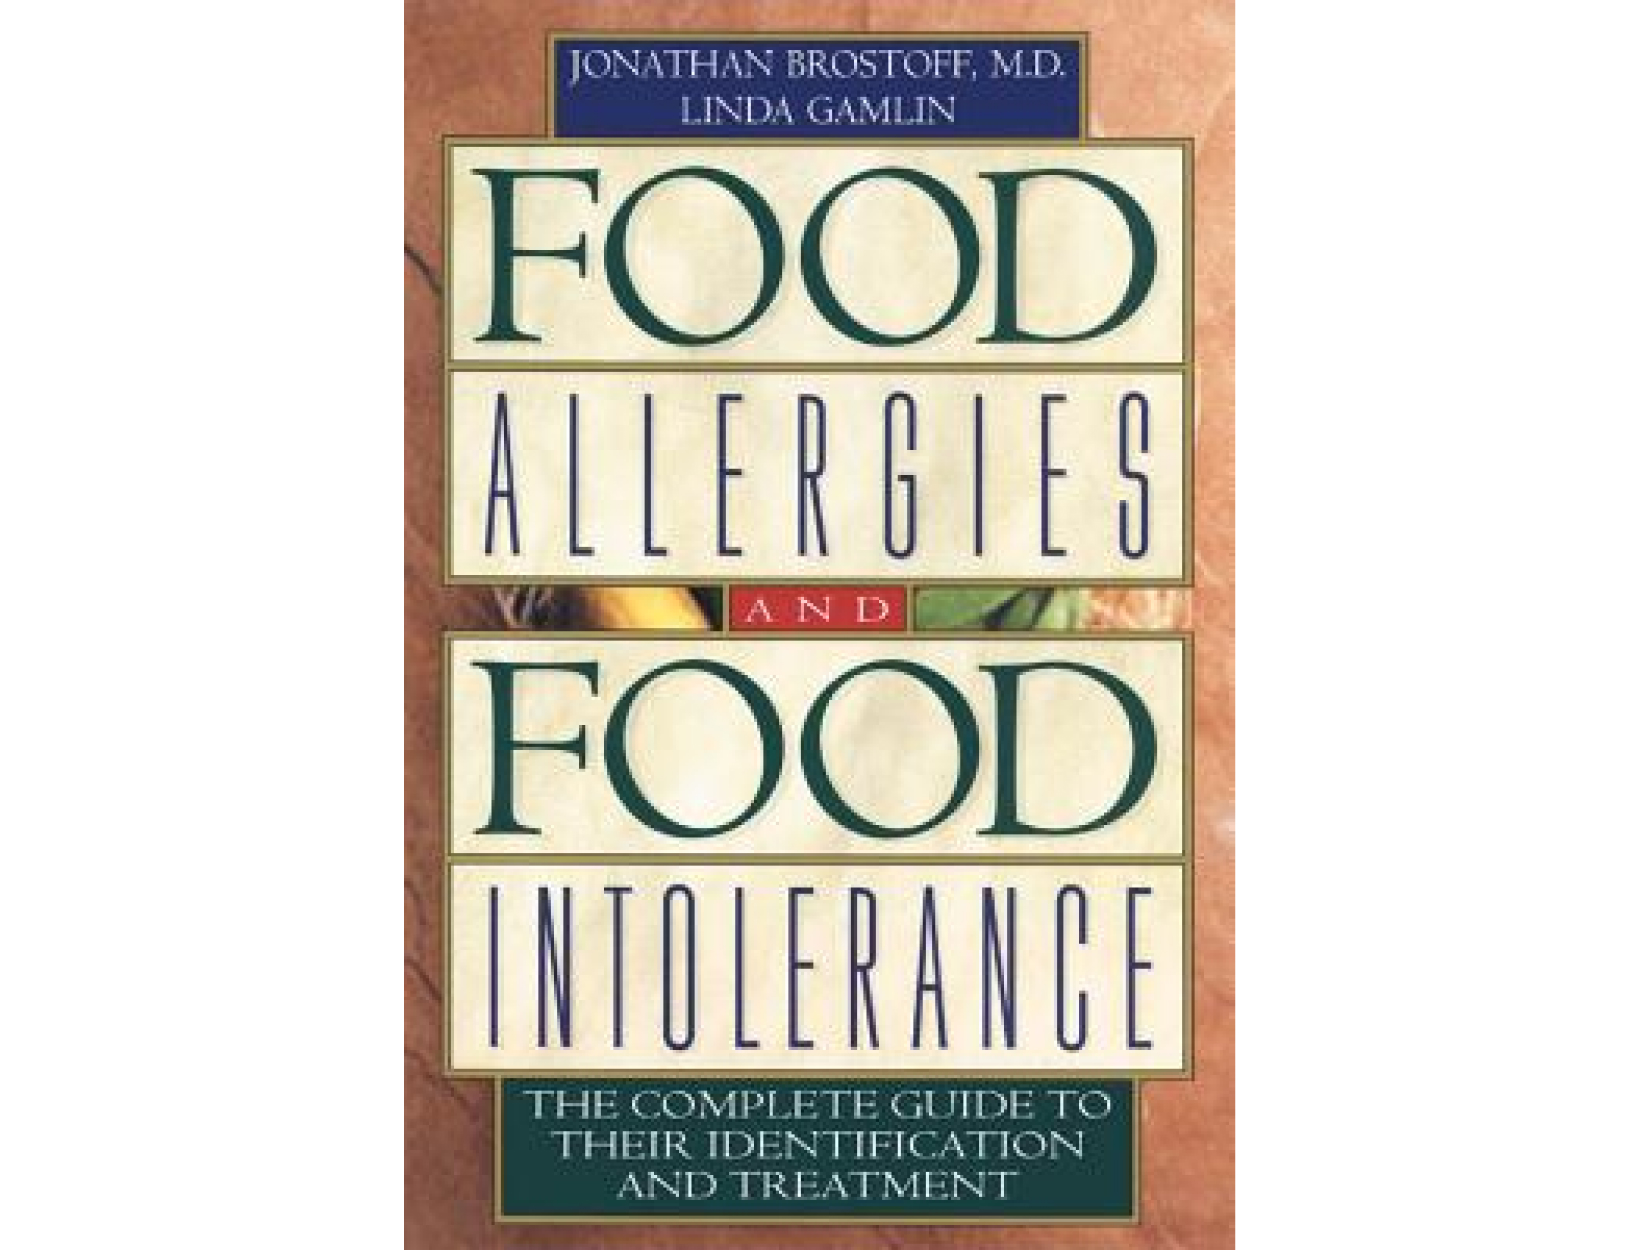 <em>Food Allergies and Food Intolerances</em> by Linda Gamlin and Jonathan Brostoff